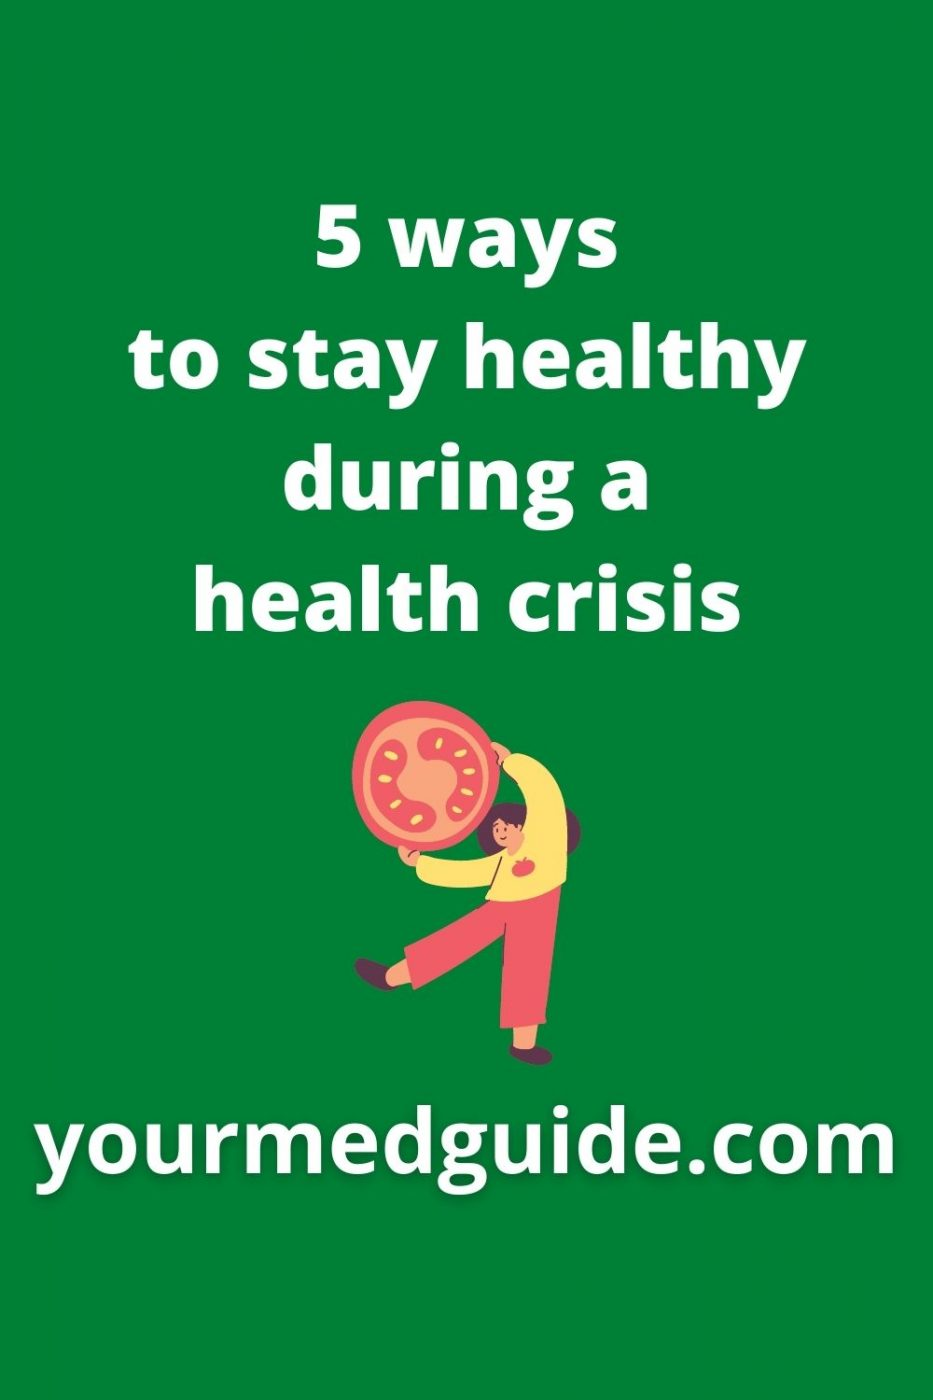 5 ways to stay healthy during a health crisis